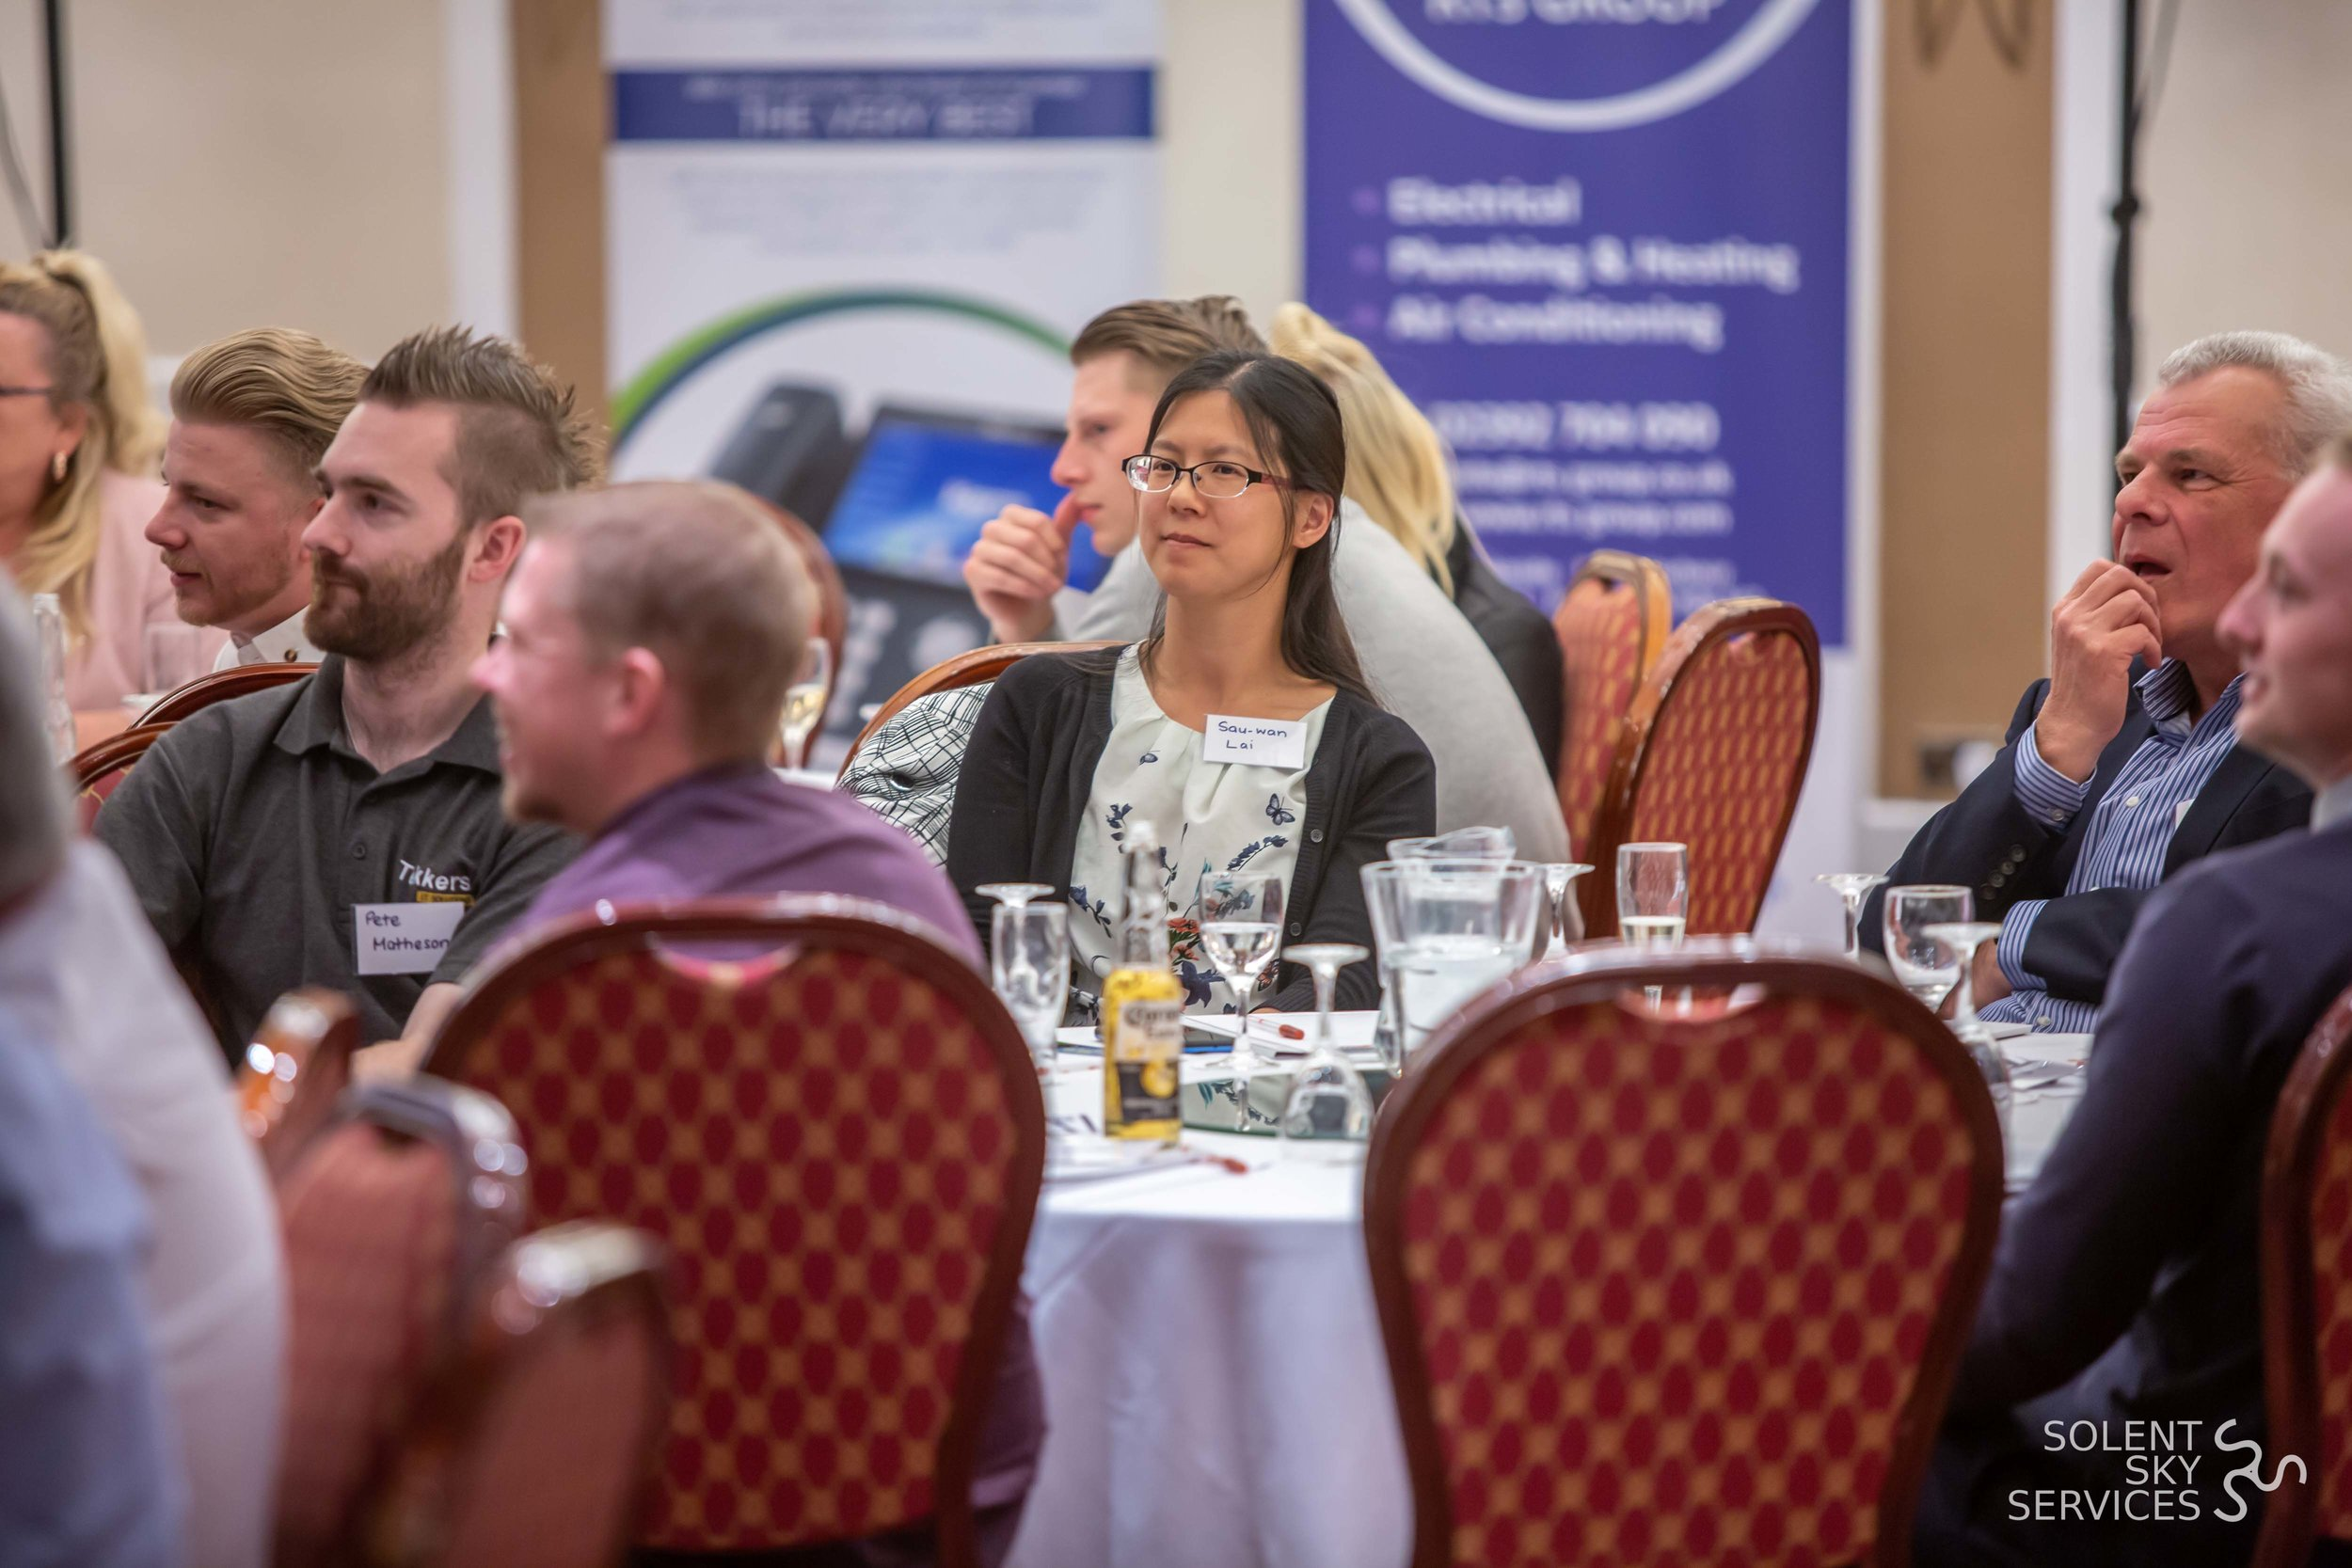 Synergy Success Networking Event #2 - Solent Sky Services-39.JPG